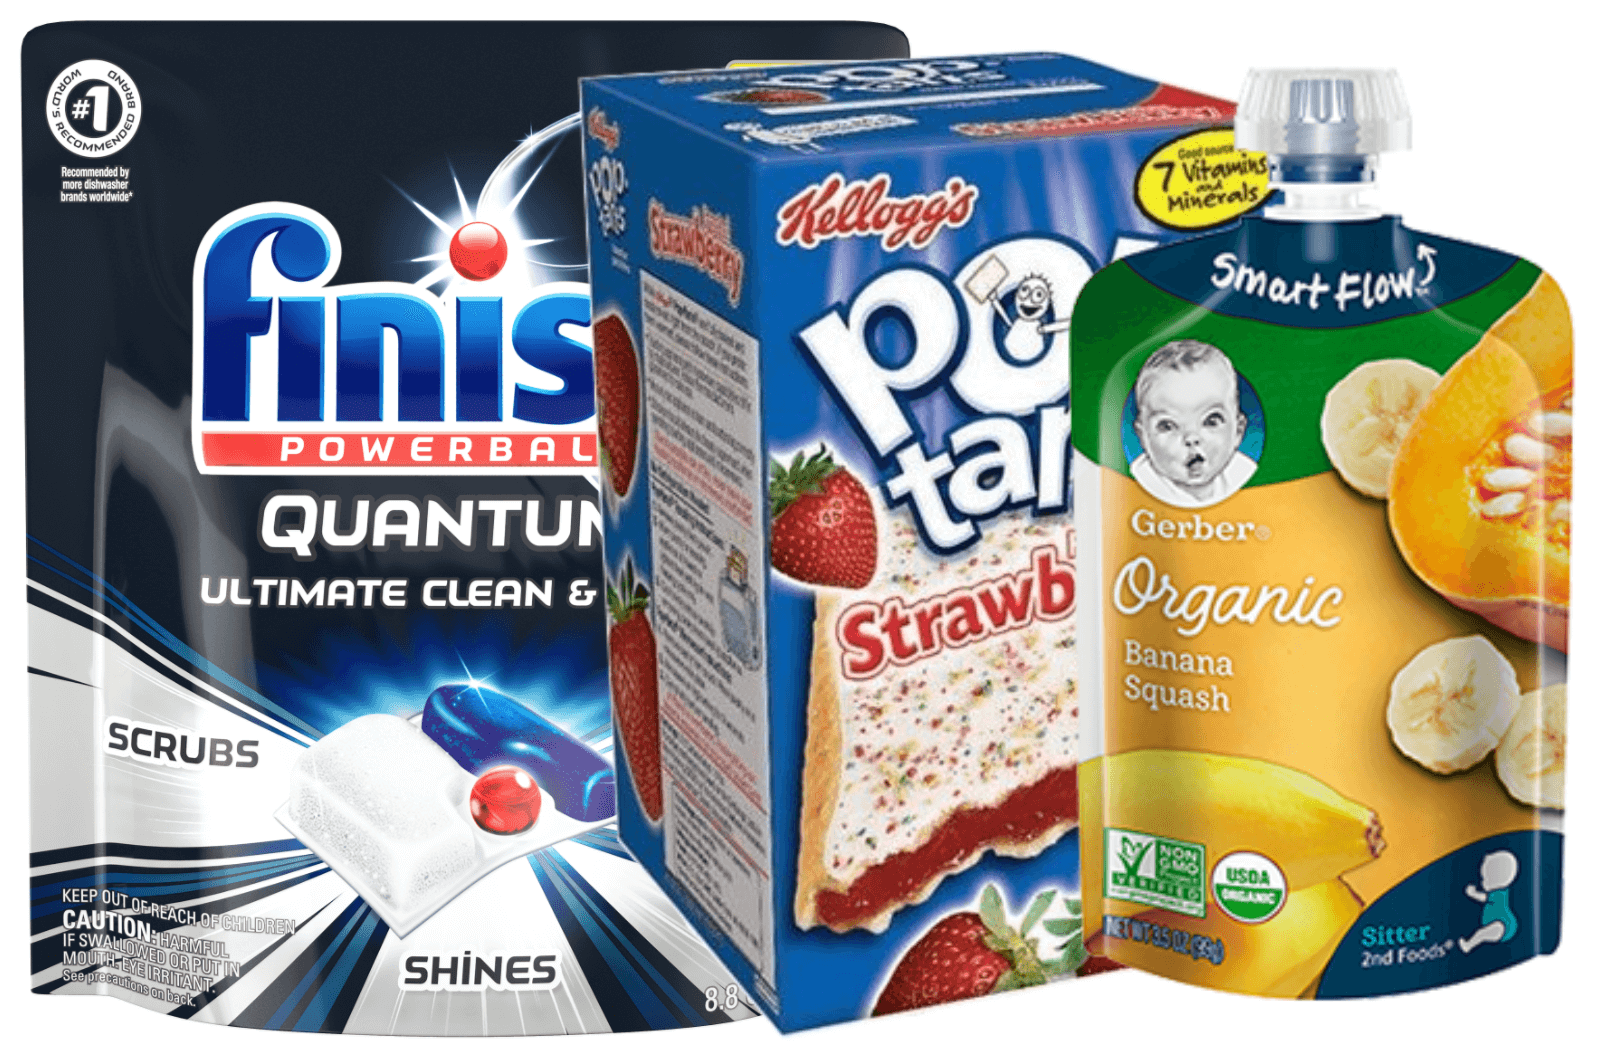 picture about Maurice Printable Coupons known as Todays Greatest Contemporary Coupon codes - Help you save upon Comprehensive, Gerber, Axe Further